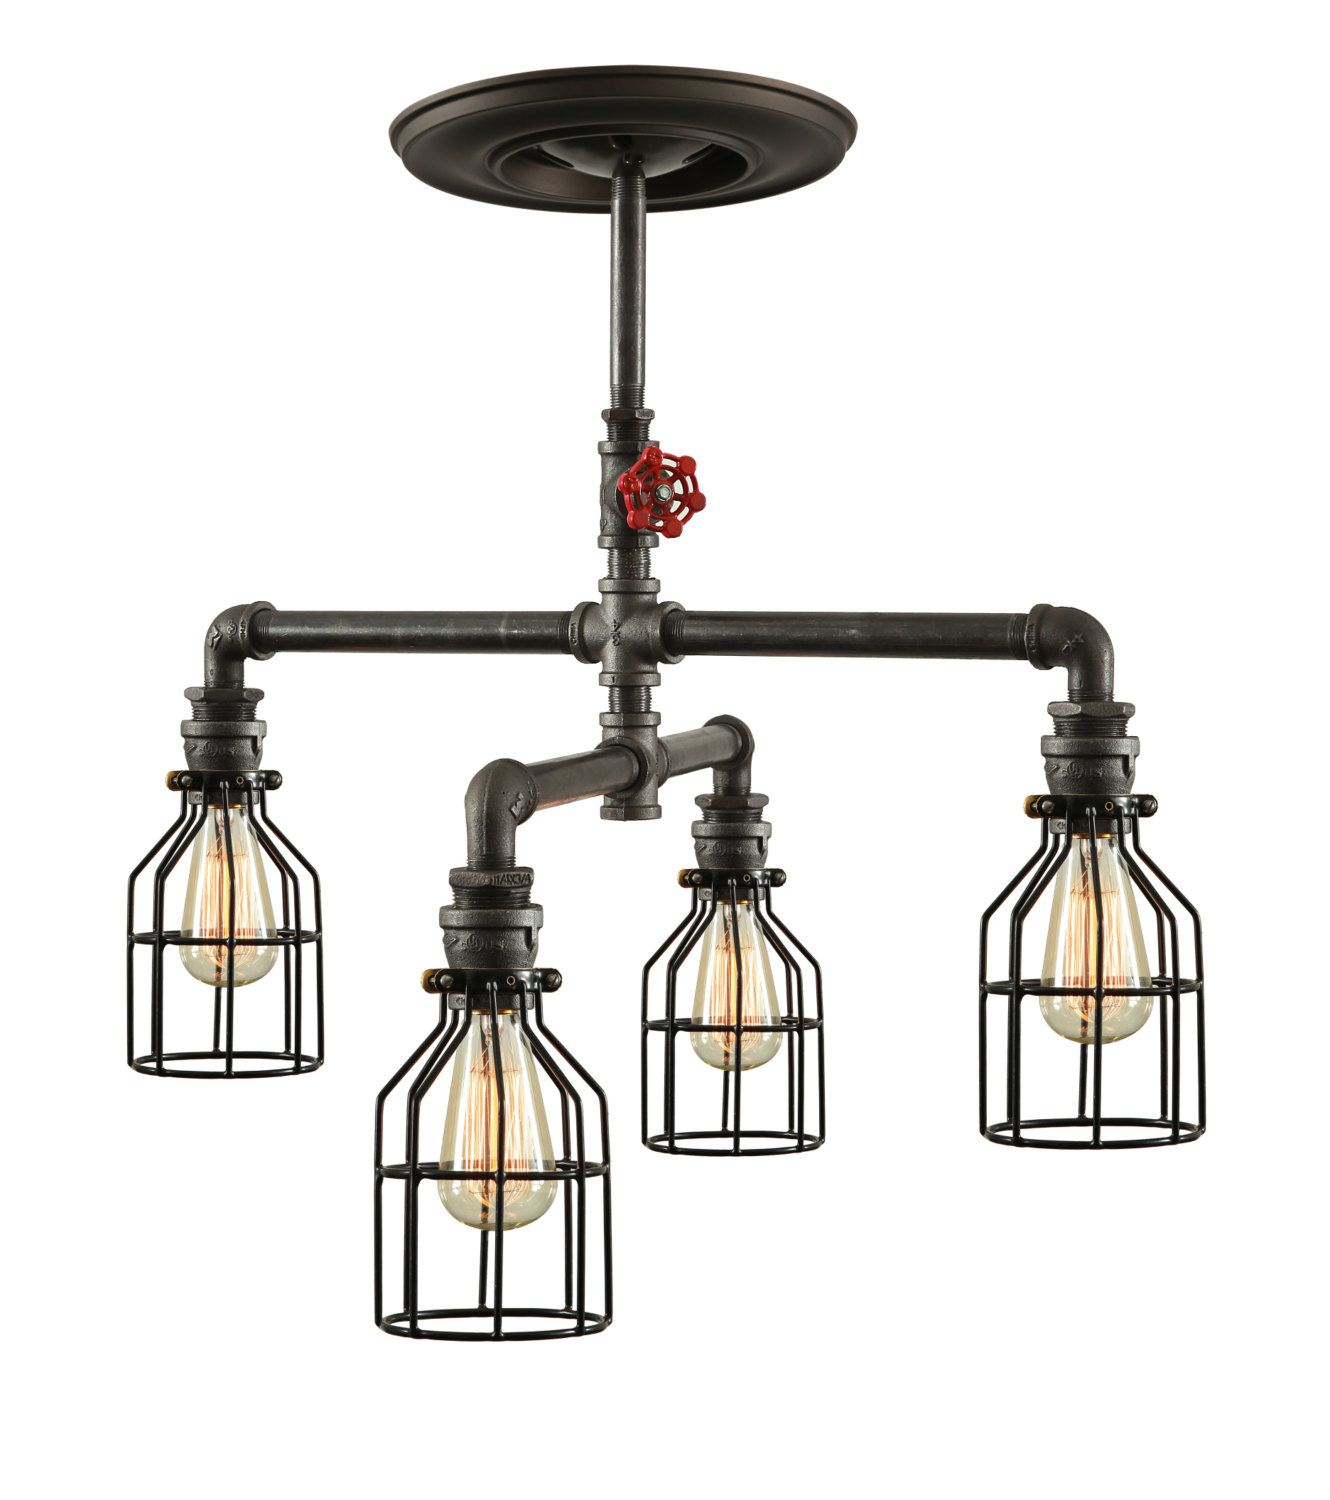 Deckenleuchte Industrial Steampunk Industrial Ceiling Light Industrial Pipe Light